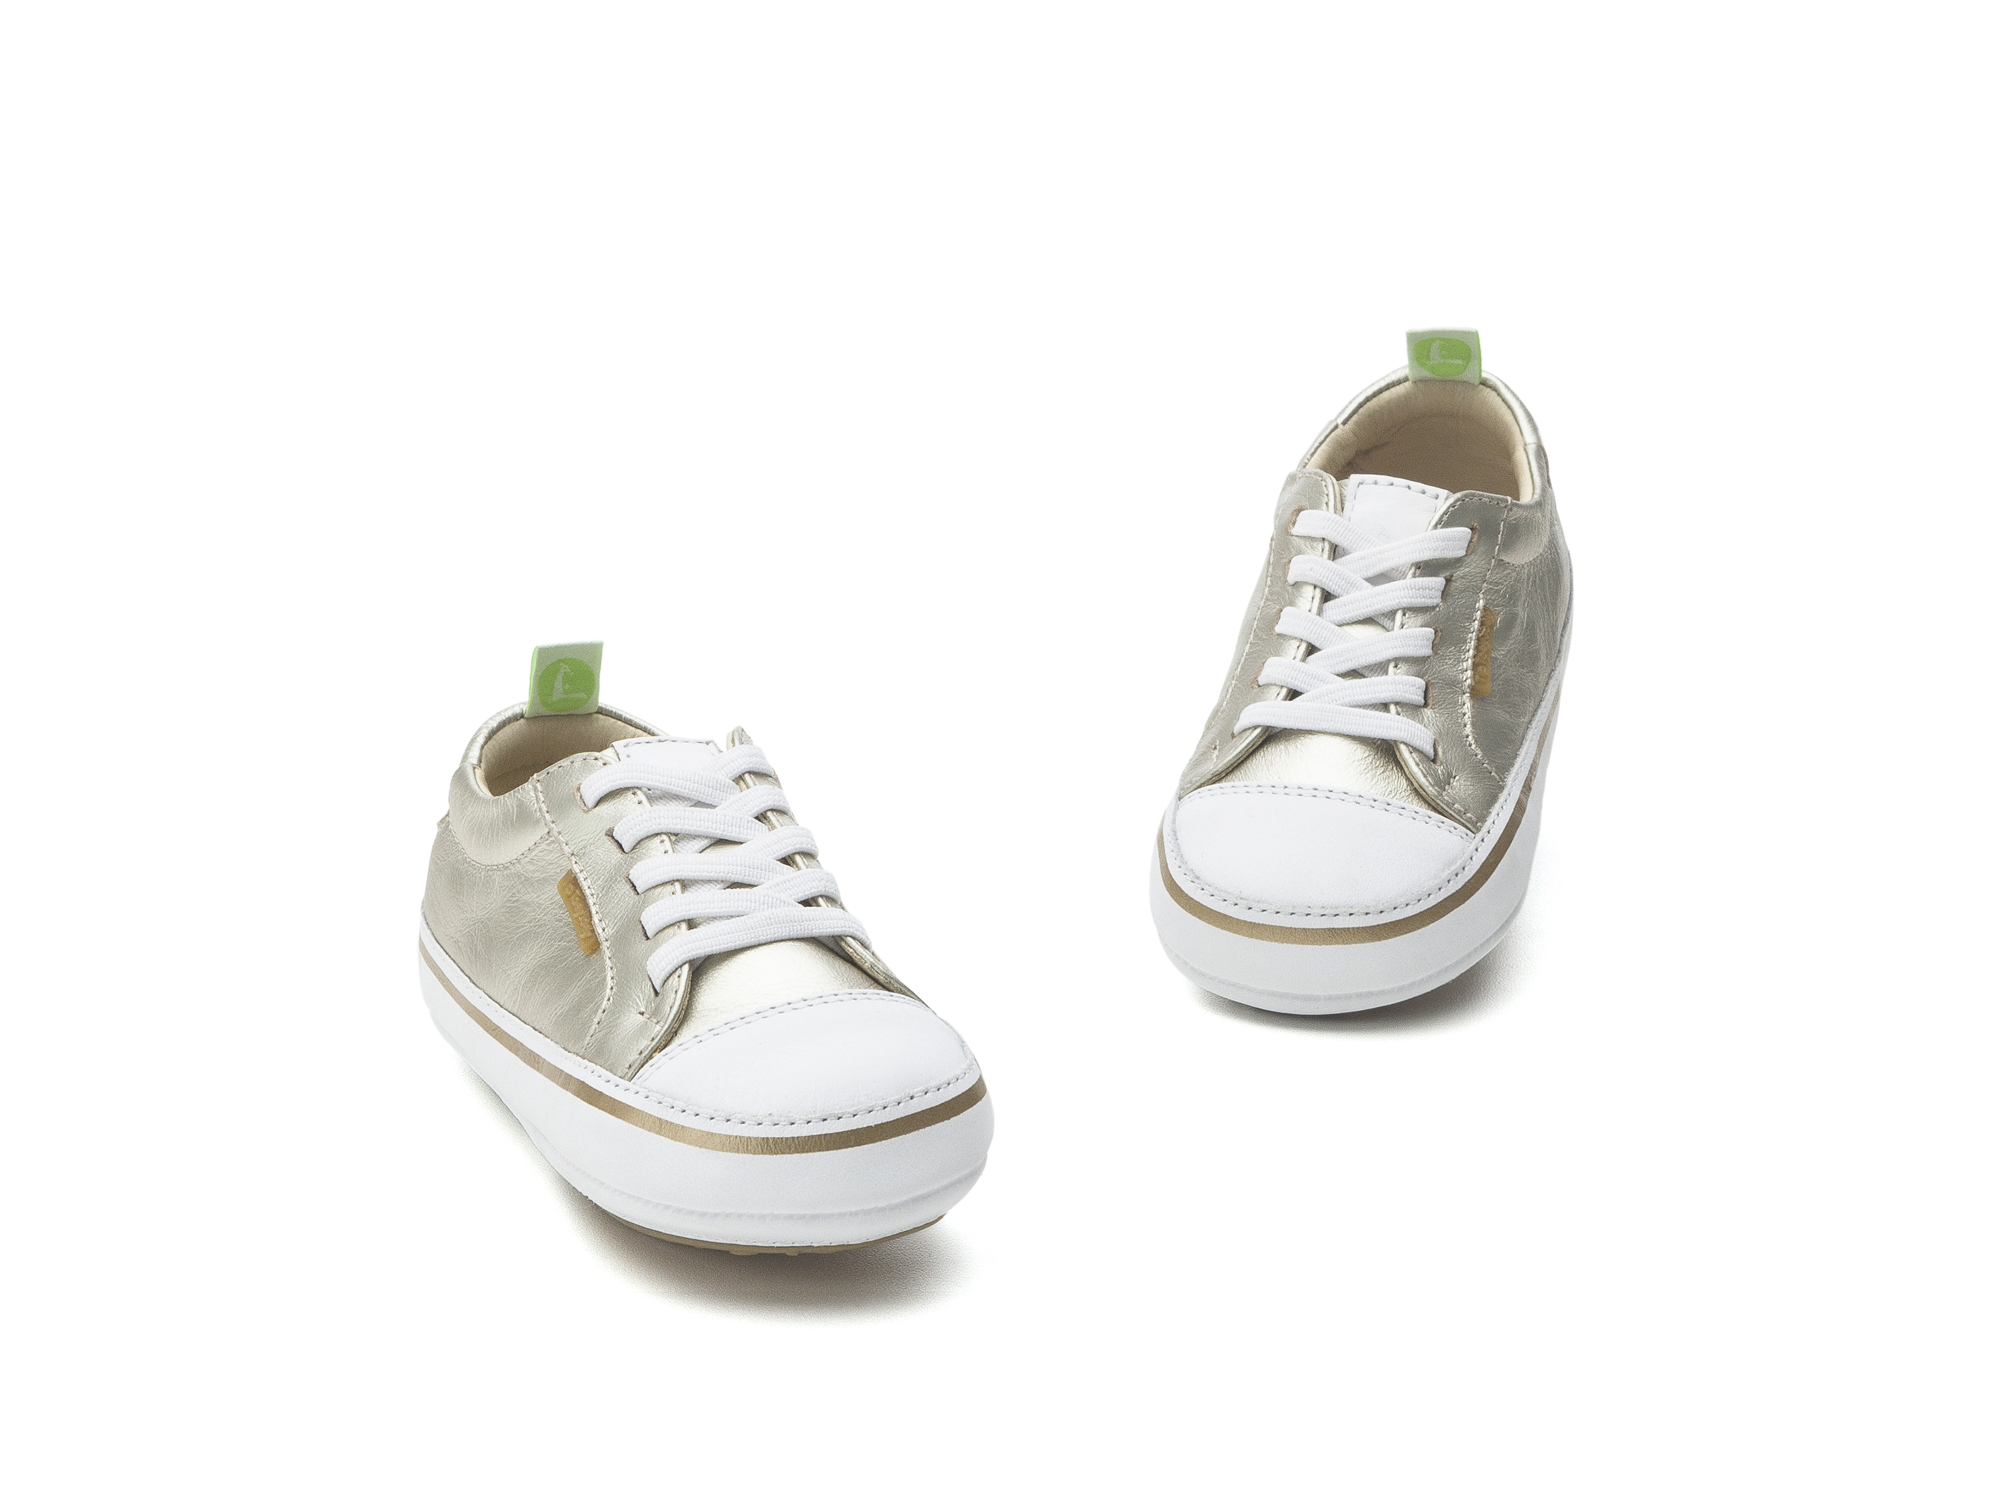 Tênis Funky Whitegold/ White Baby for ages 0 to 2 years - 2